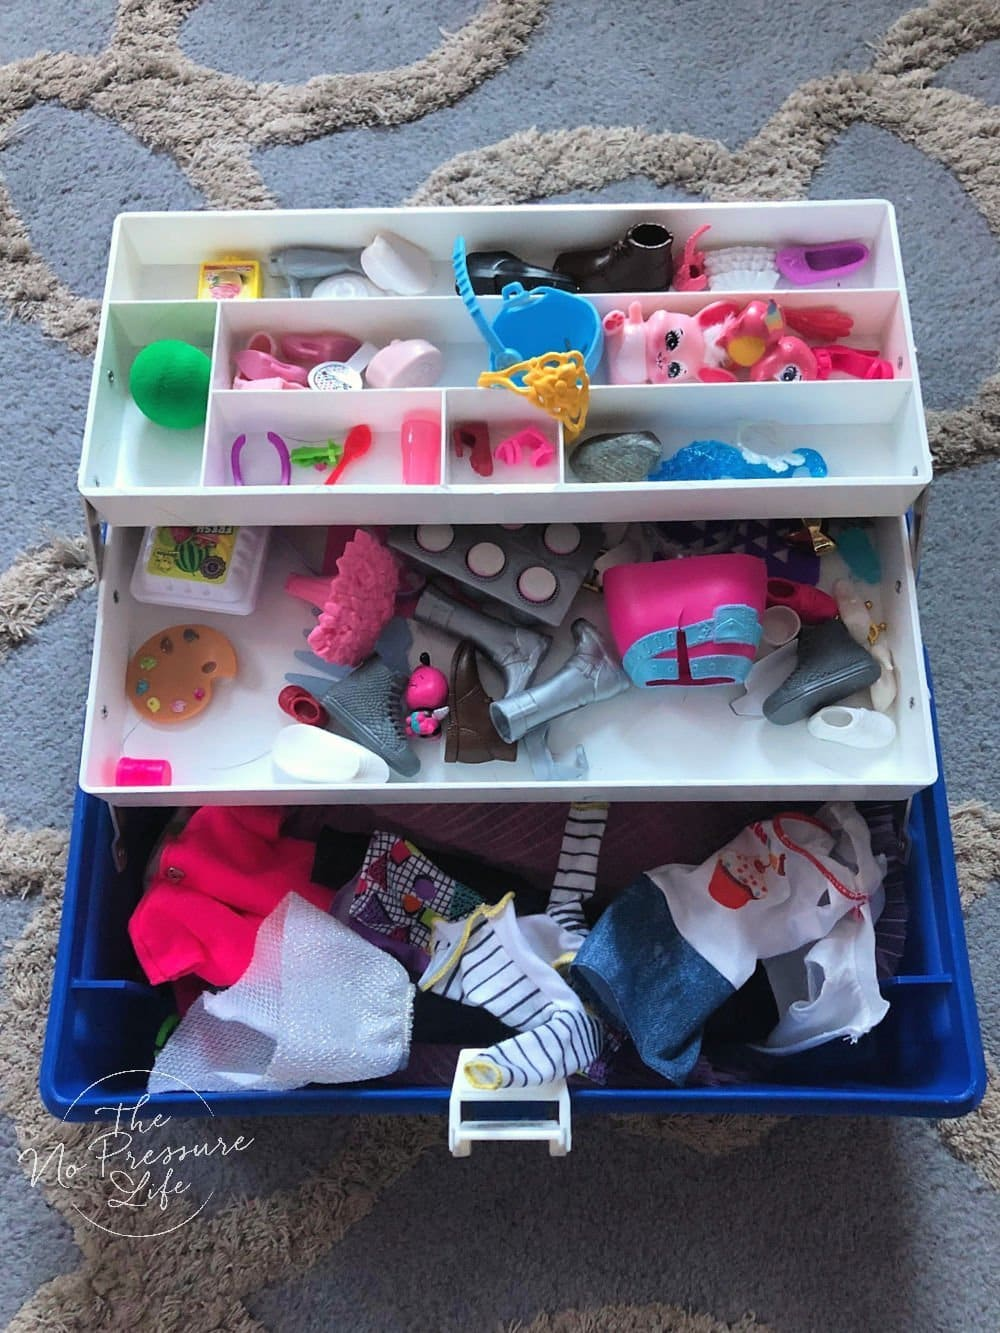 Portable Barbie storage idea - carry case for Barbie shoes and accessories